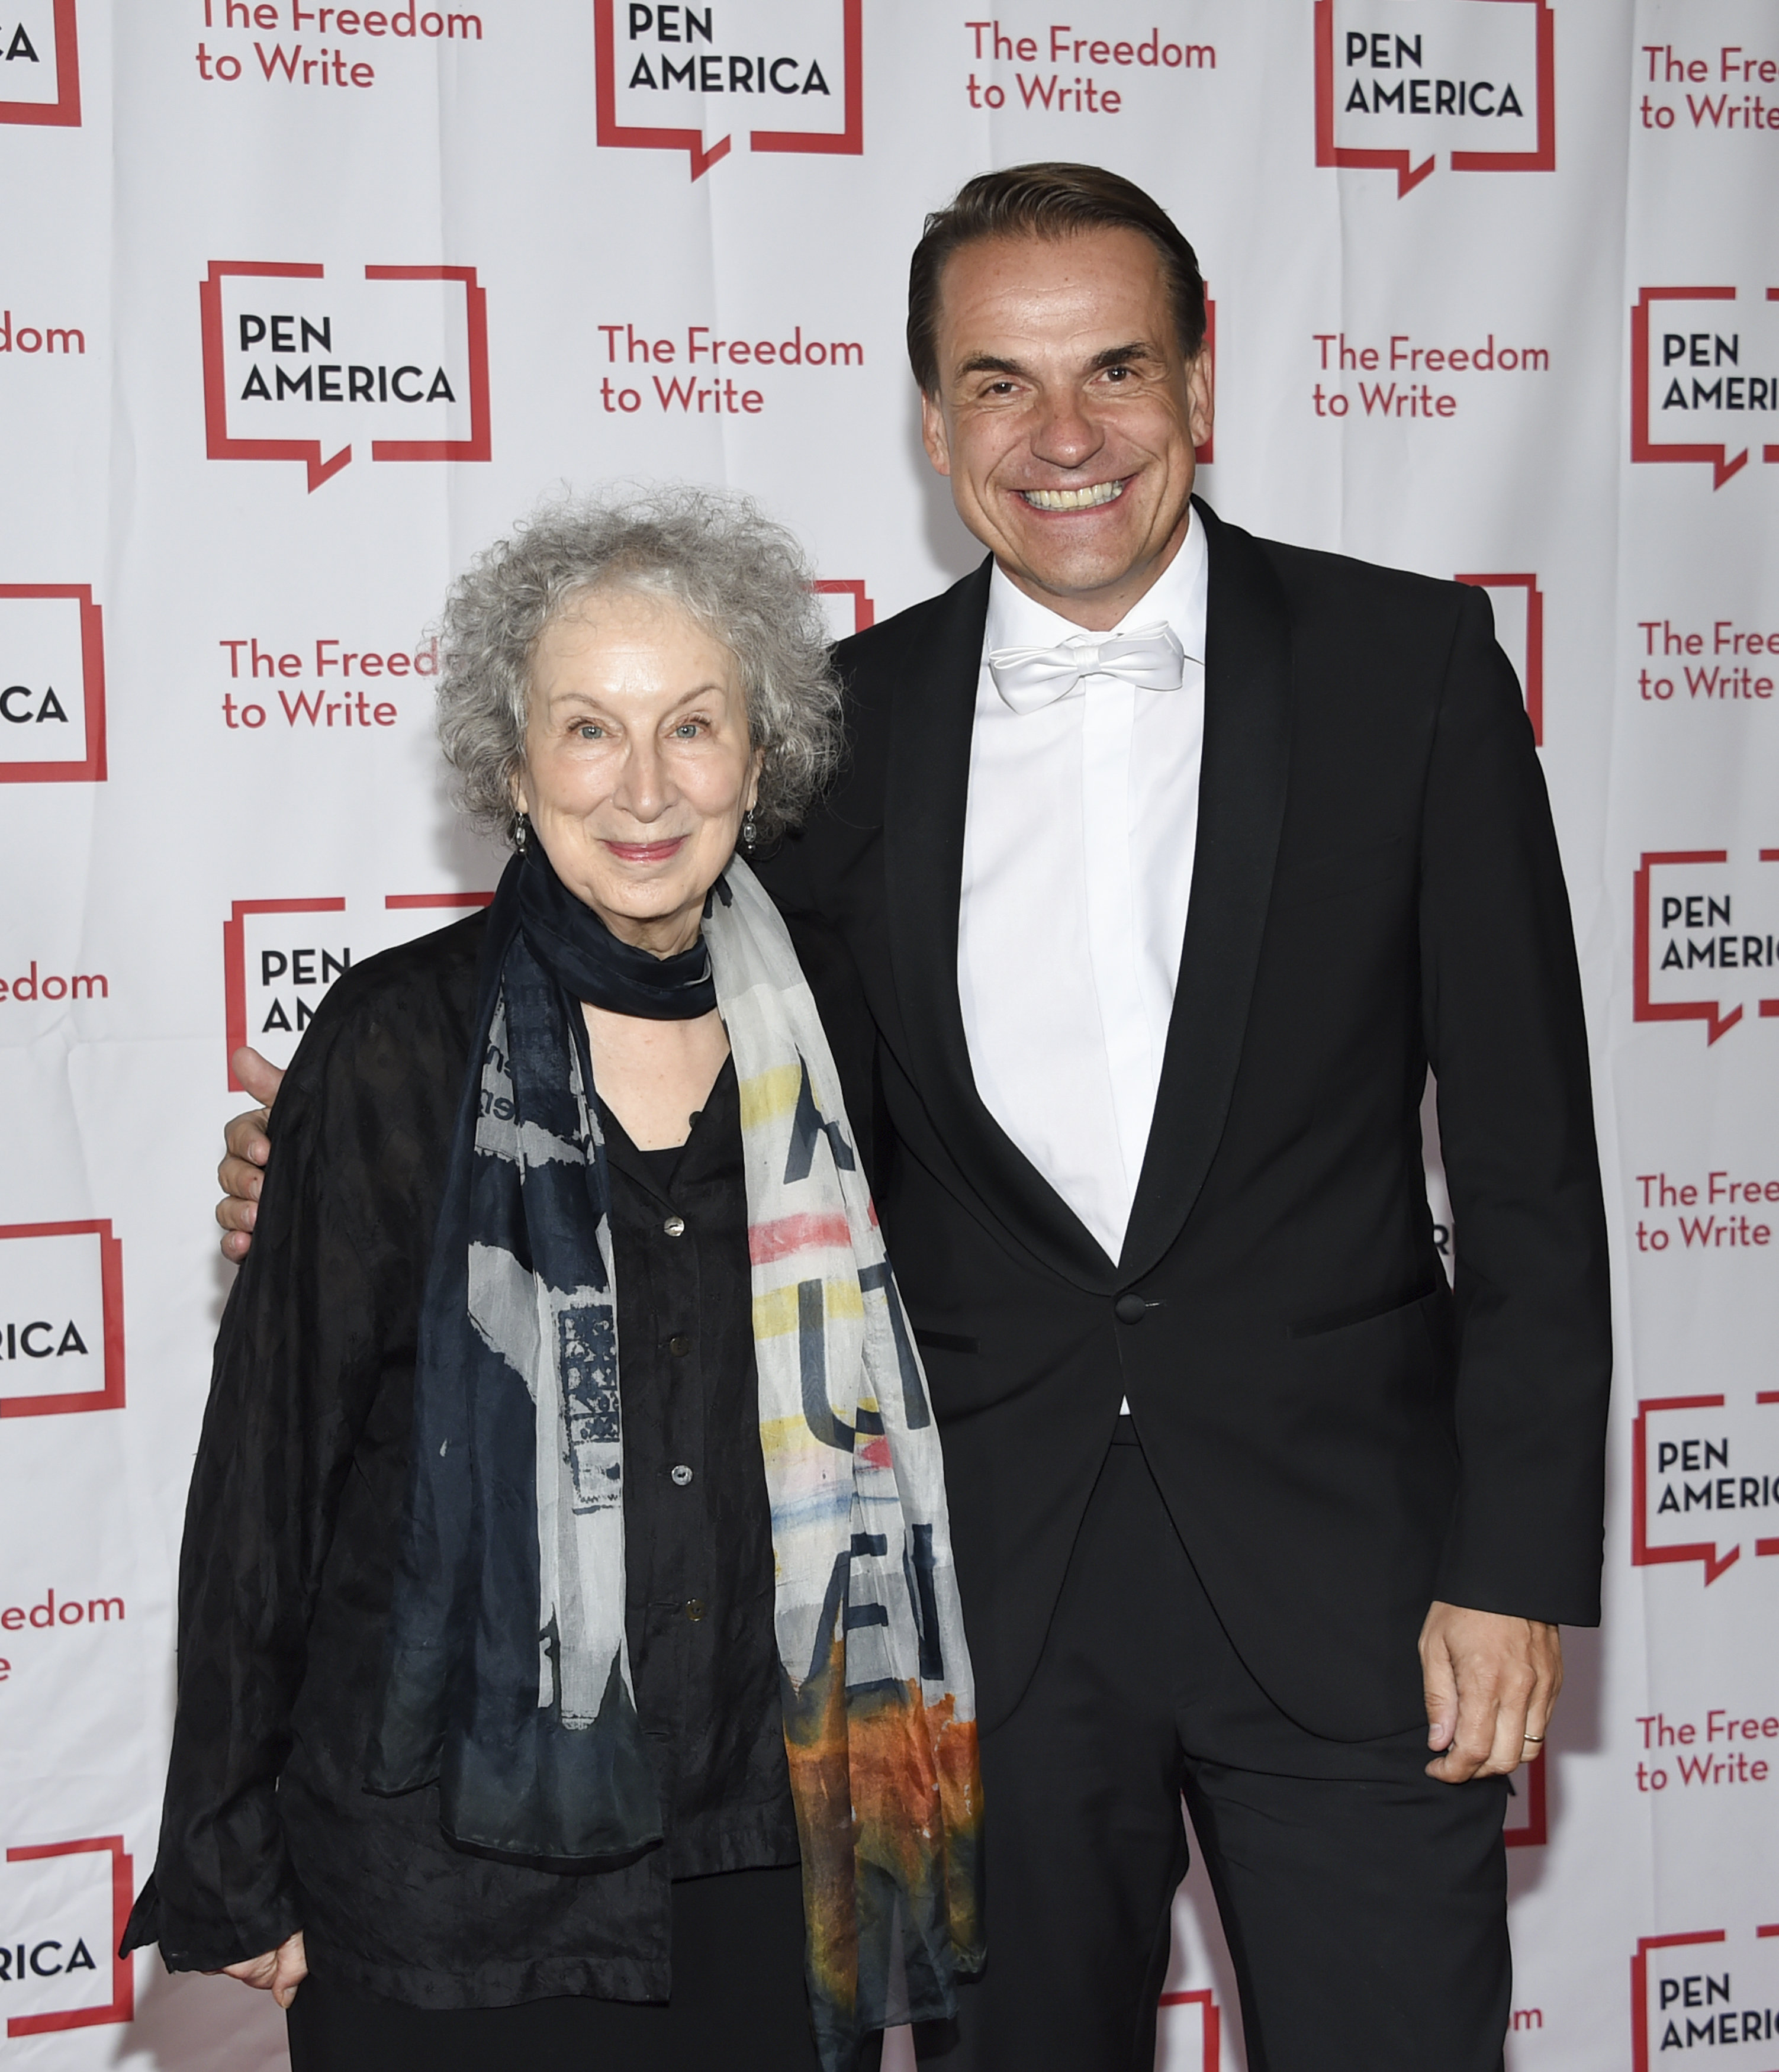 Author Margaret Atwood, left, and Penguin Random House CEO Markus Dohle attend the 2018 PEN Literary Gala at the American Museum of Natural History on Tuesday, May 22, 2018, in New York. (Photo by Evan Agostini/Invision/AP)